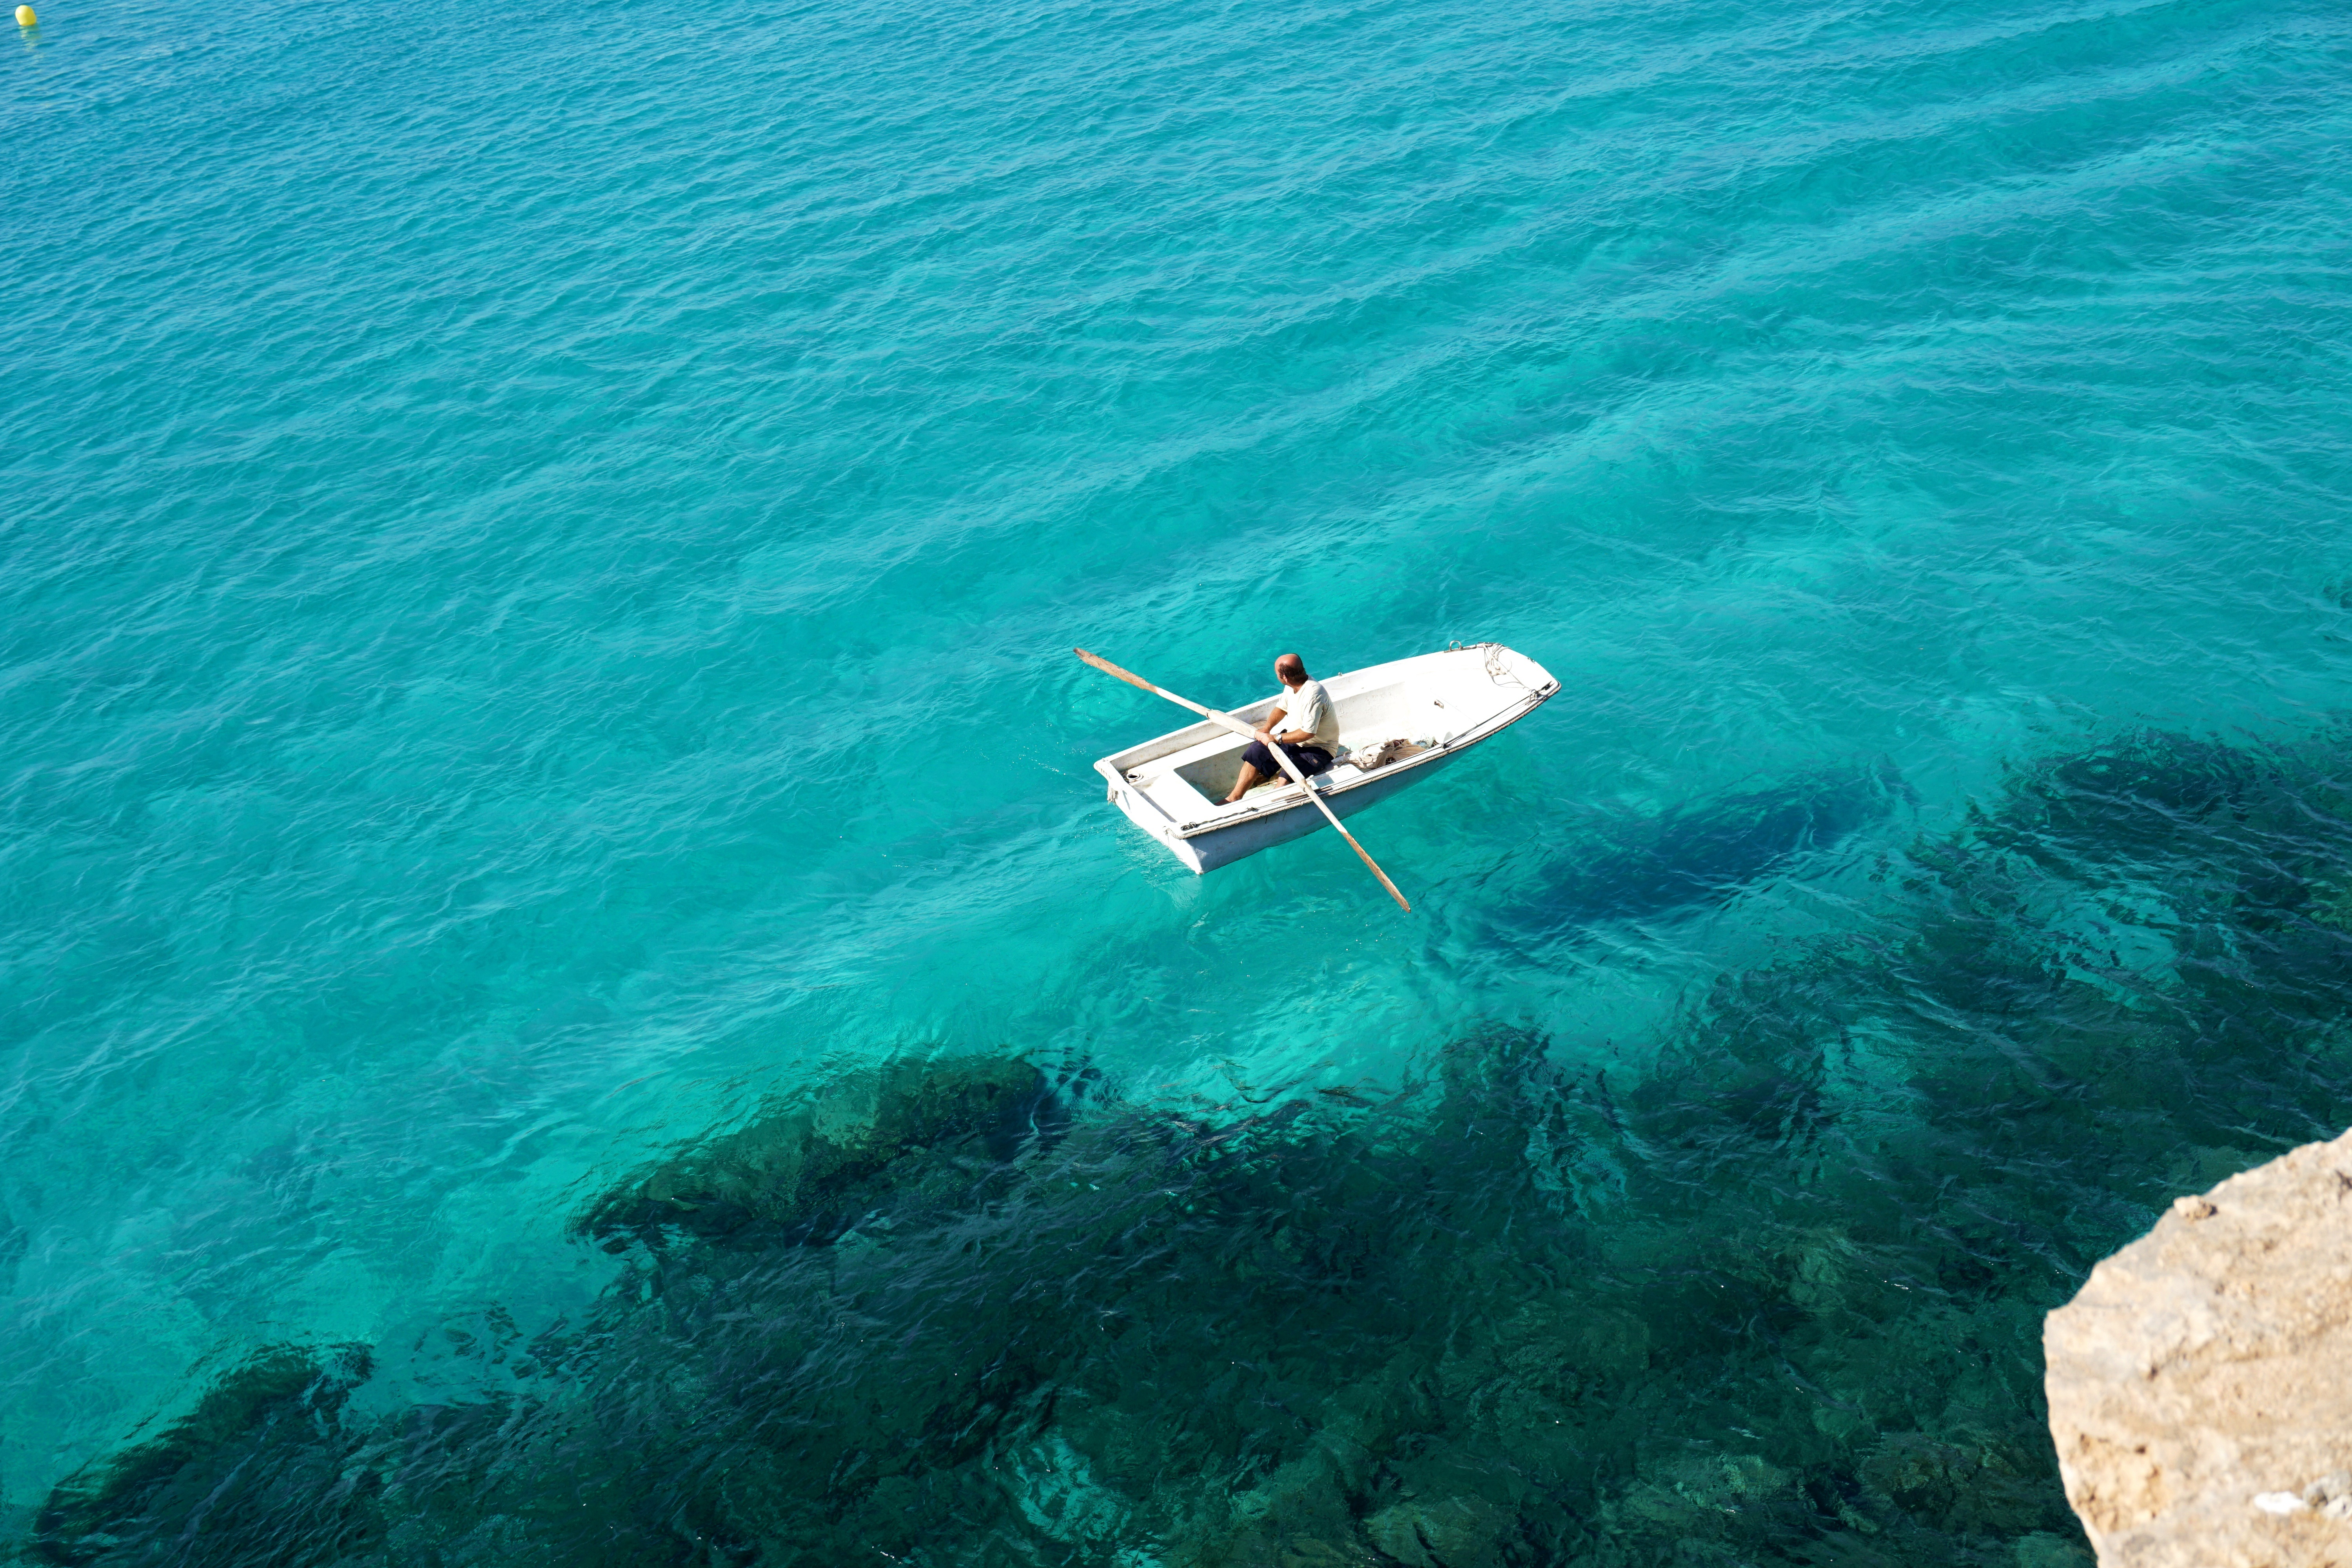 Man in little boat on the sea, rent a boat in Spain